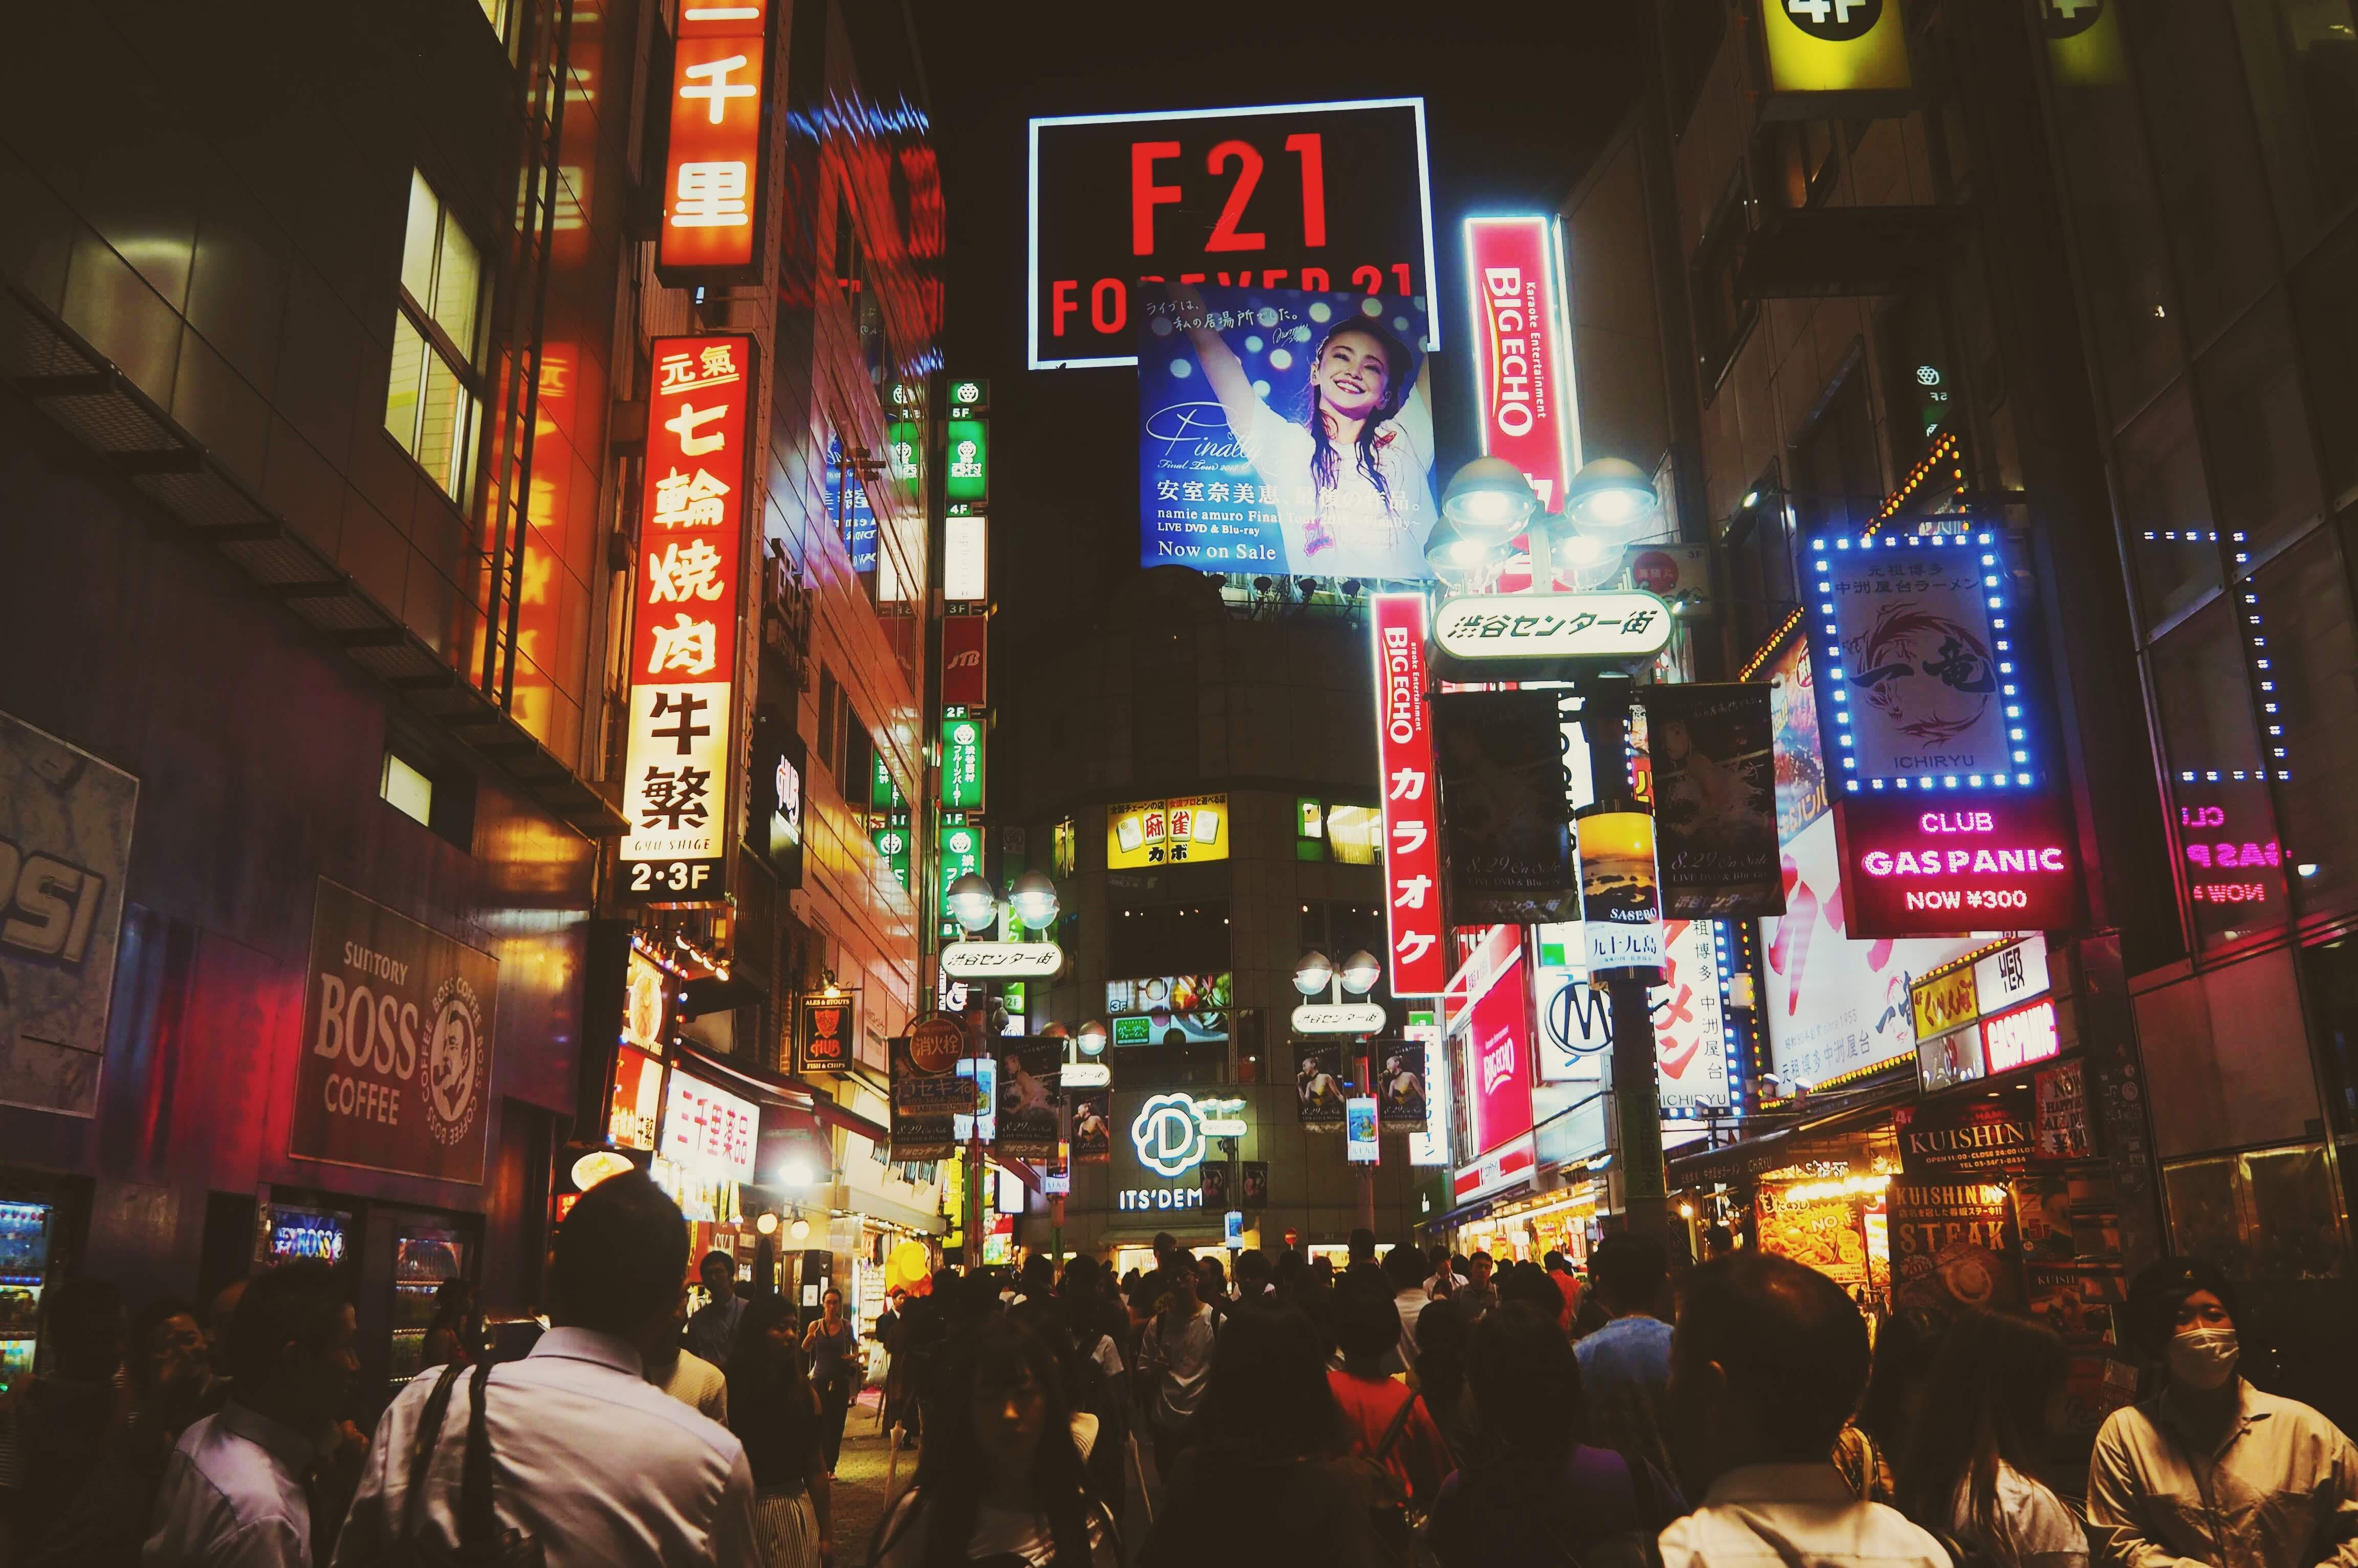 Crowd of People Under Neon Signs